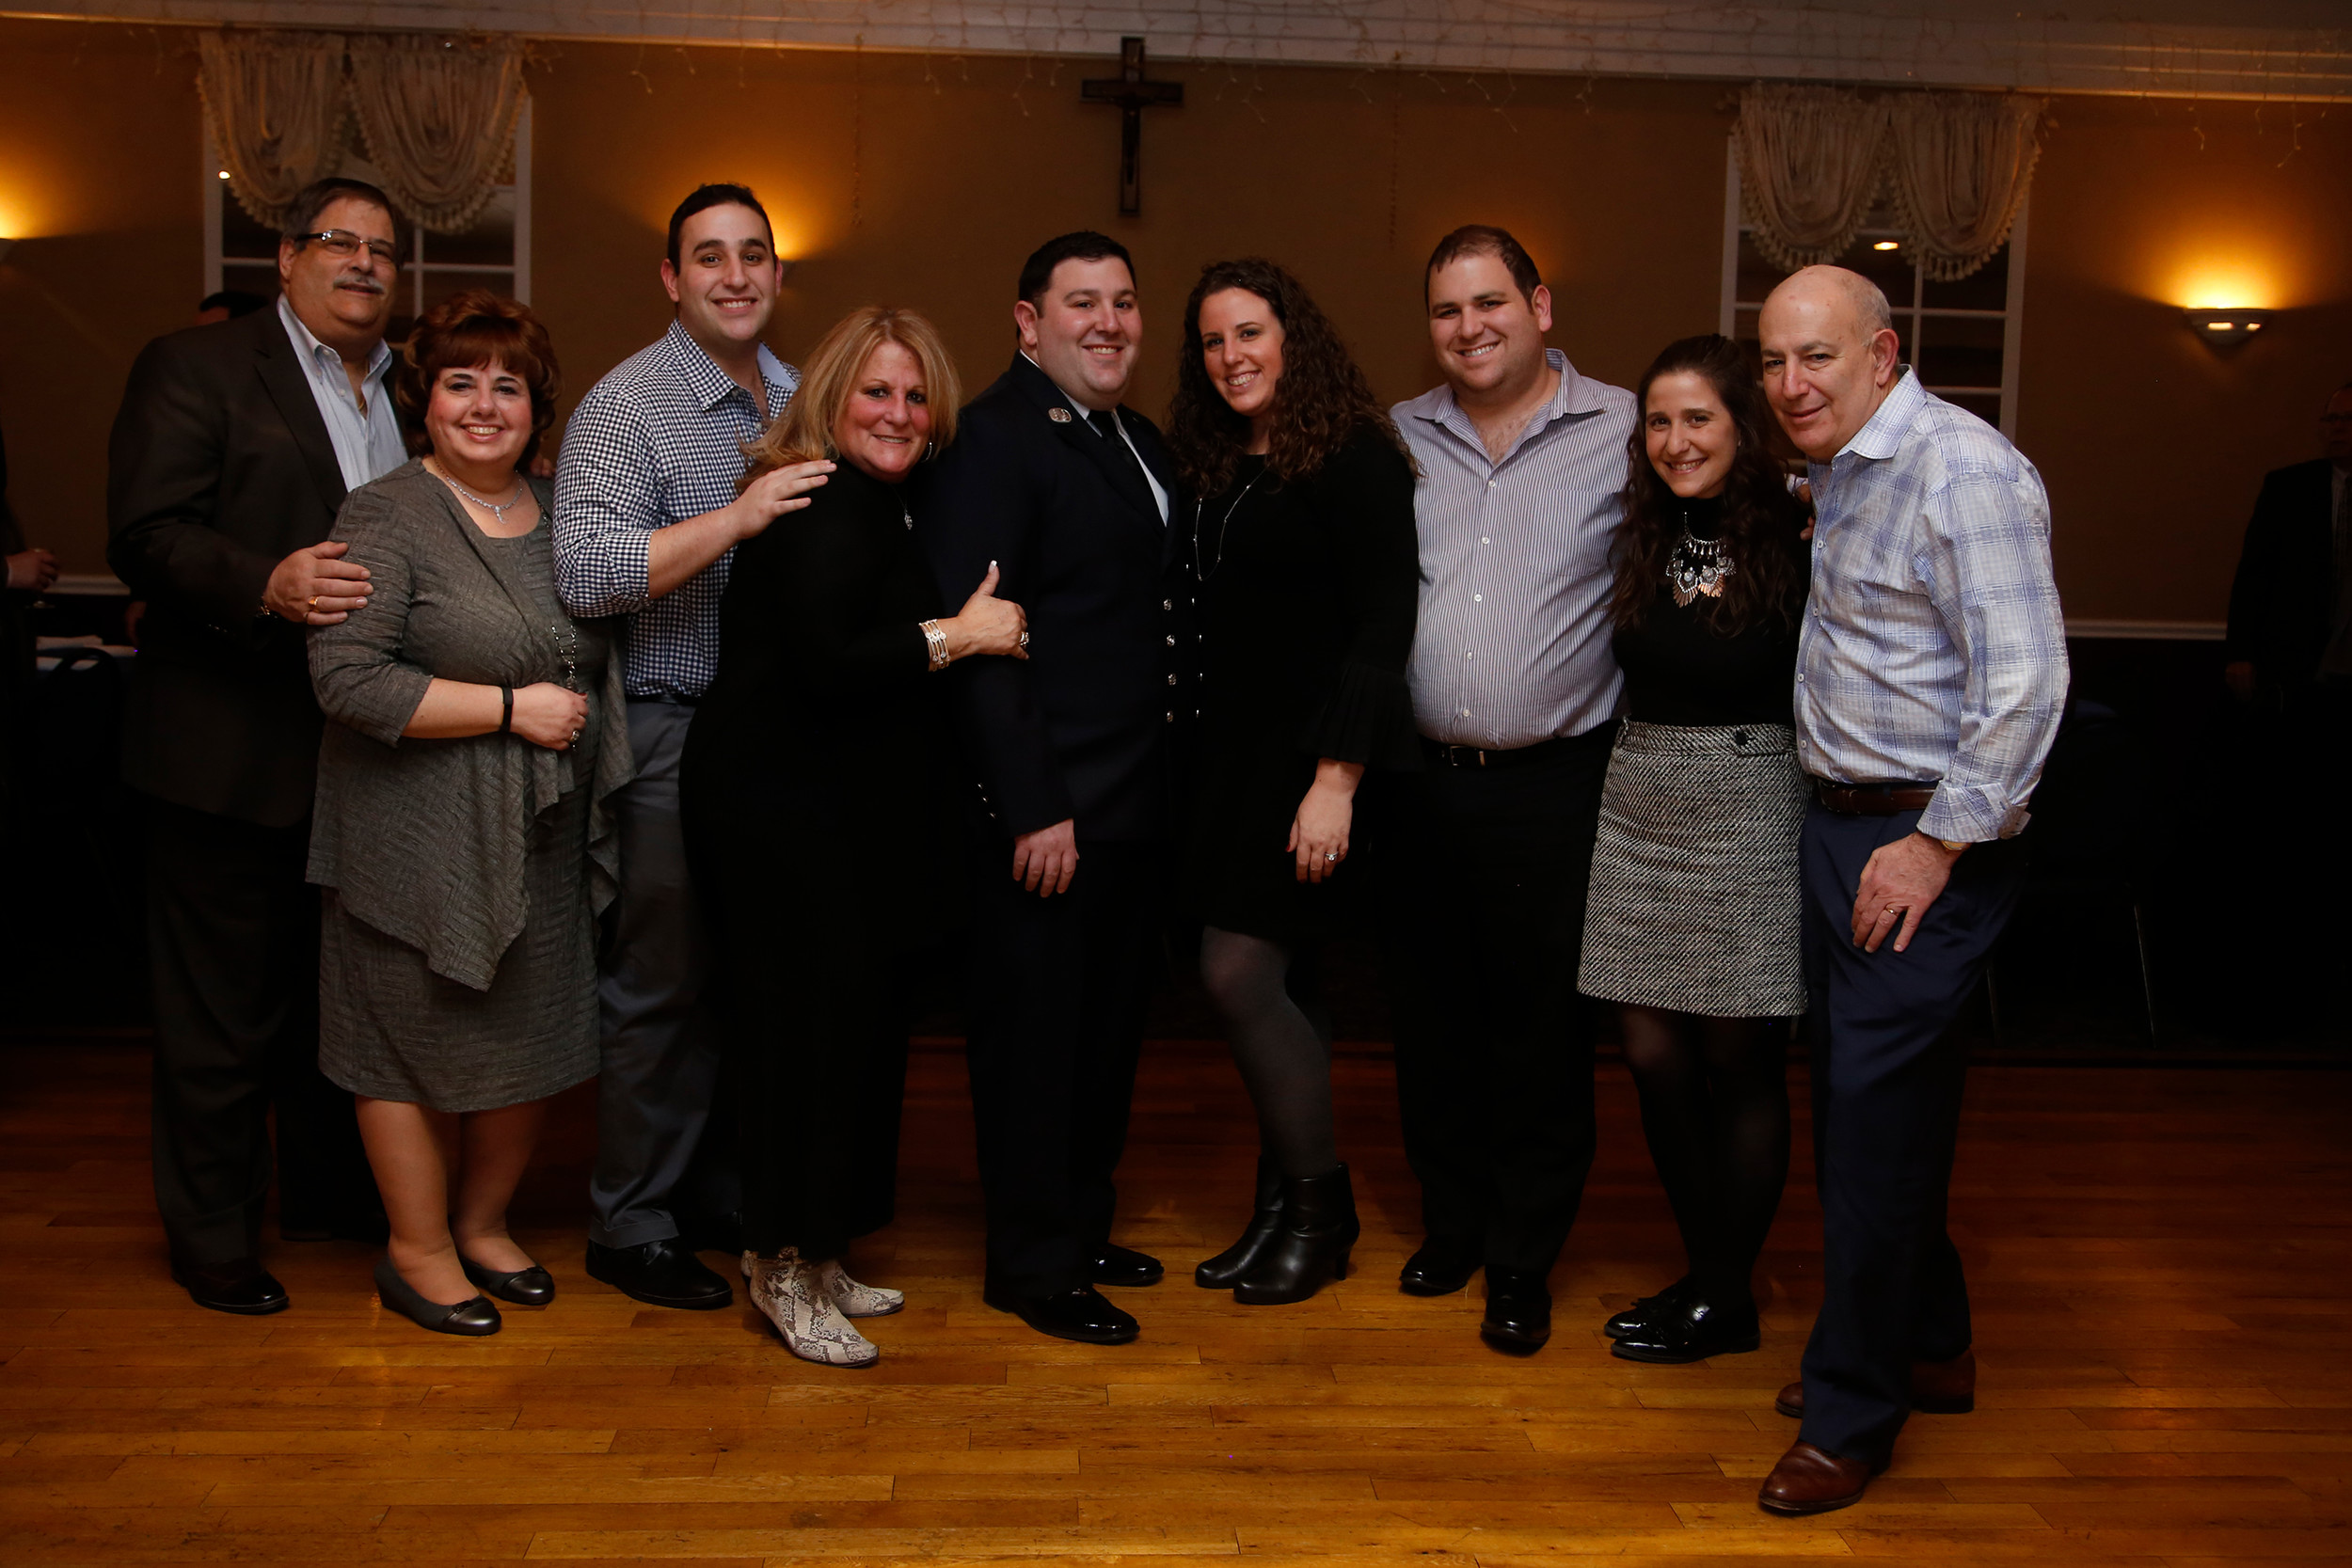 Firefighter Cory Hirsch, center, celebrated earning Lynbrook Fire Department First Responder of the Year with his family.